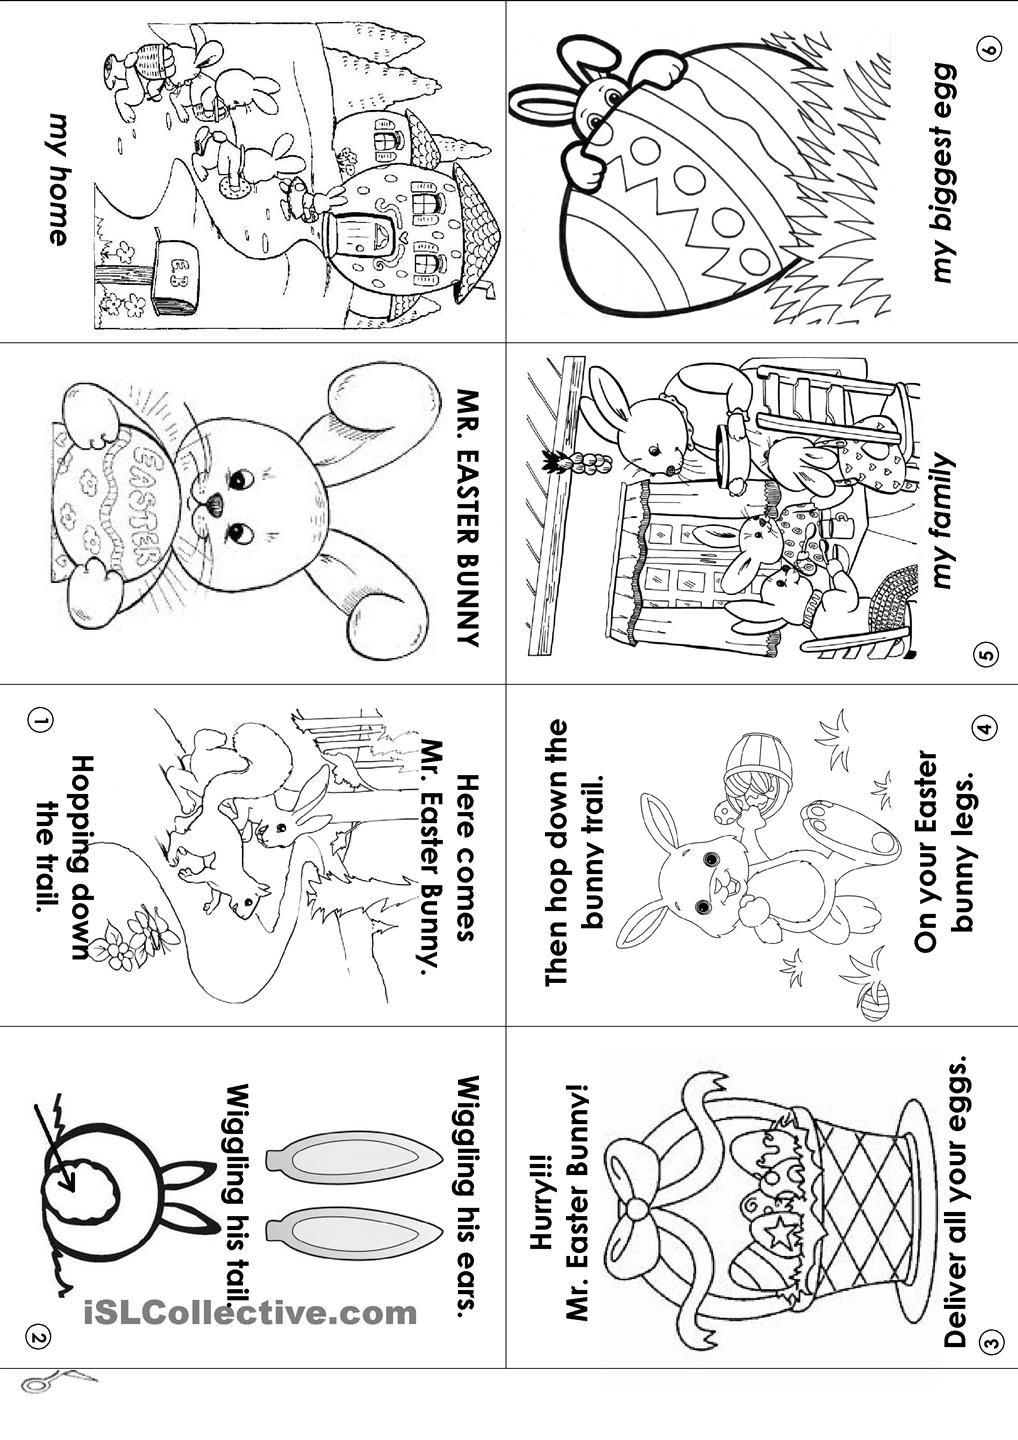 story of the world activity book 1 pdf download